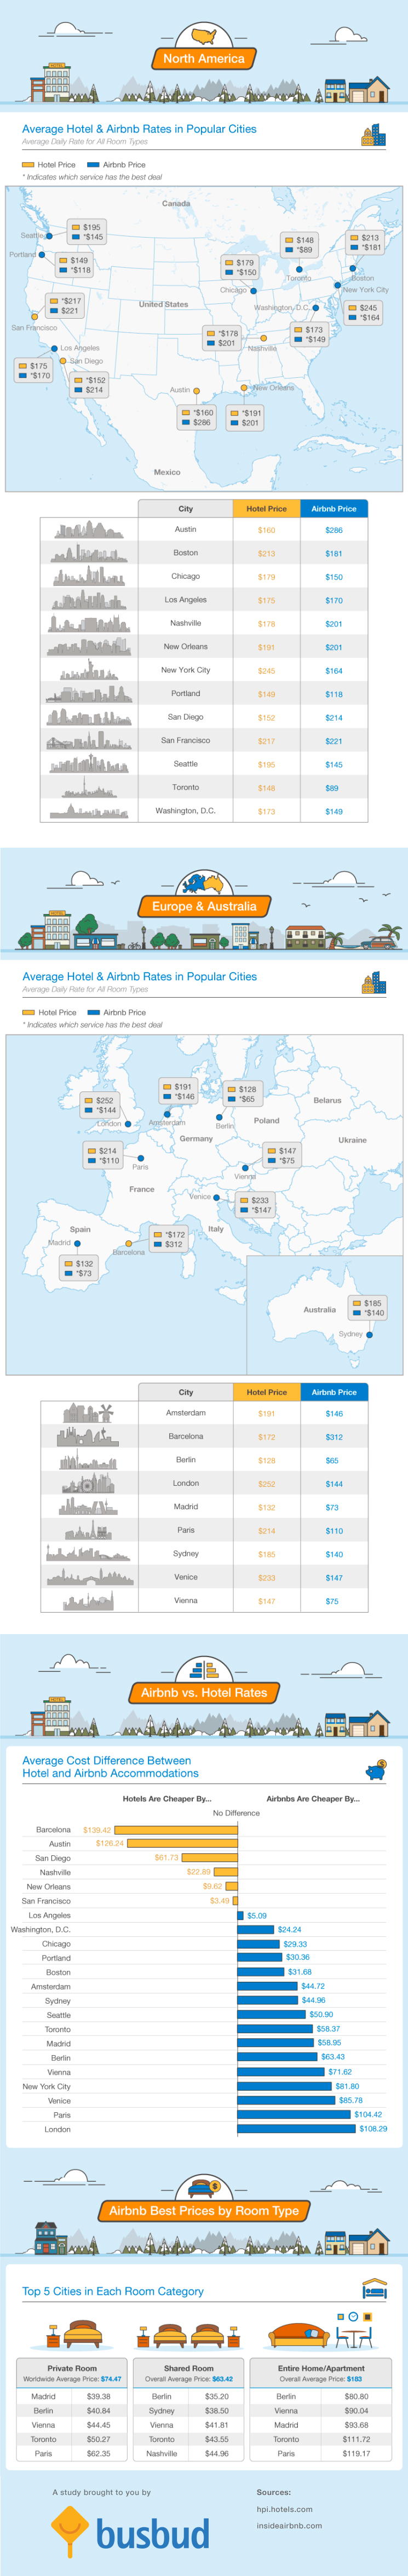 Comparing Airbnb Vs Hotel Rates Around The World Infographic